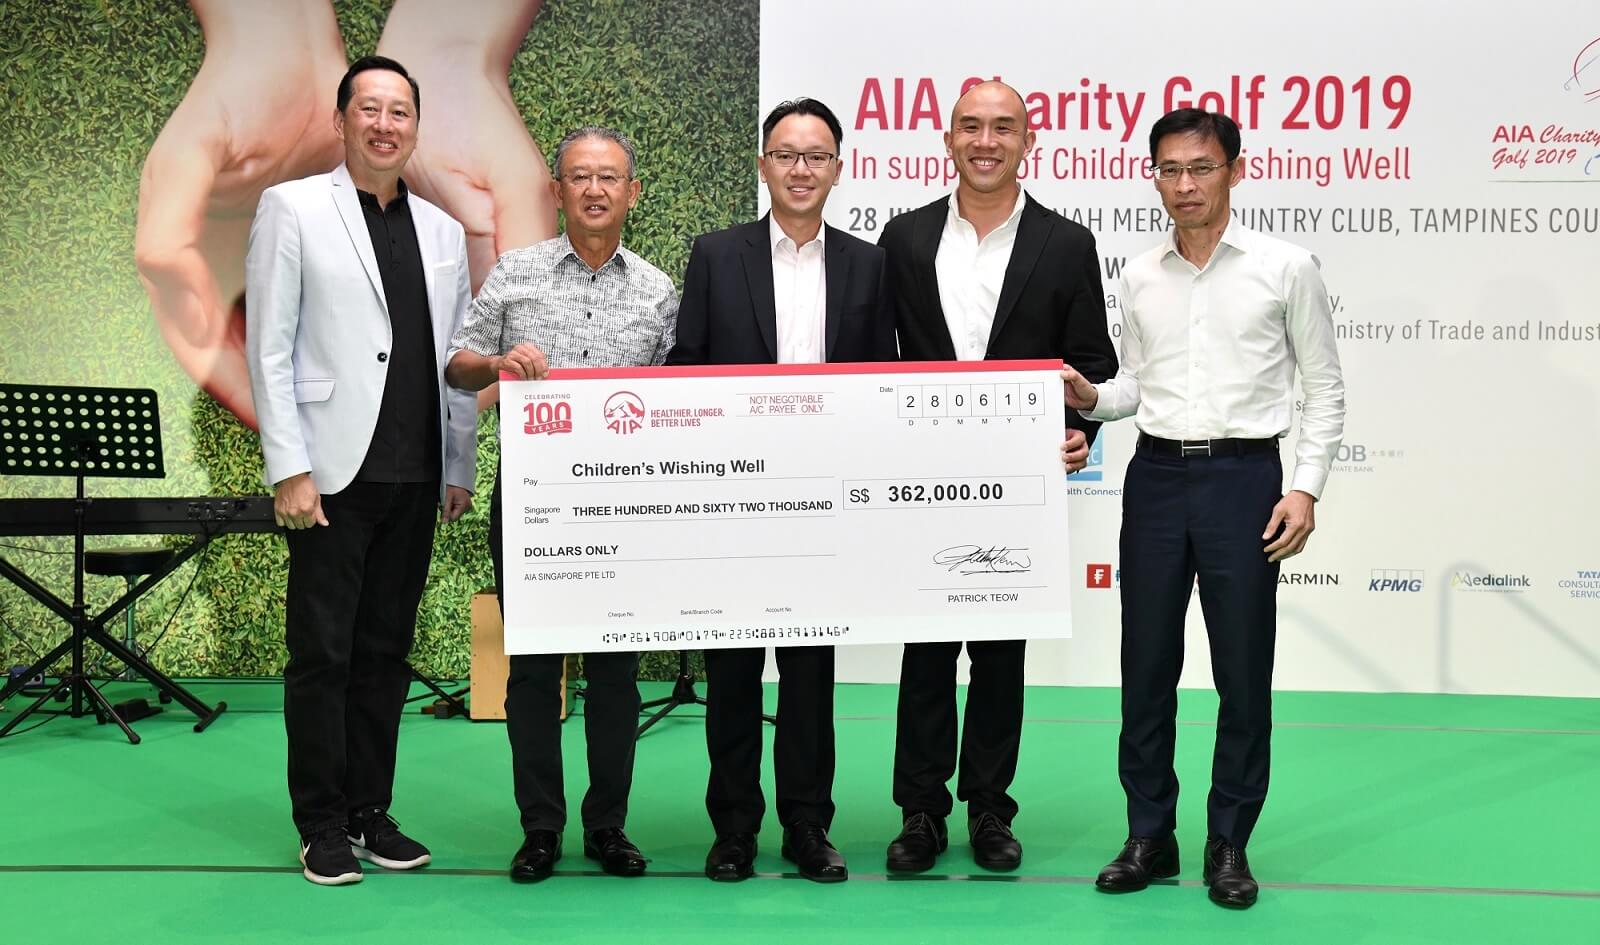 AIA Charity Golf 2019 Group Photo